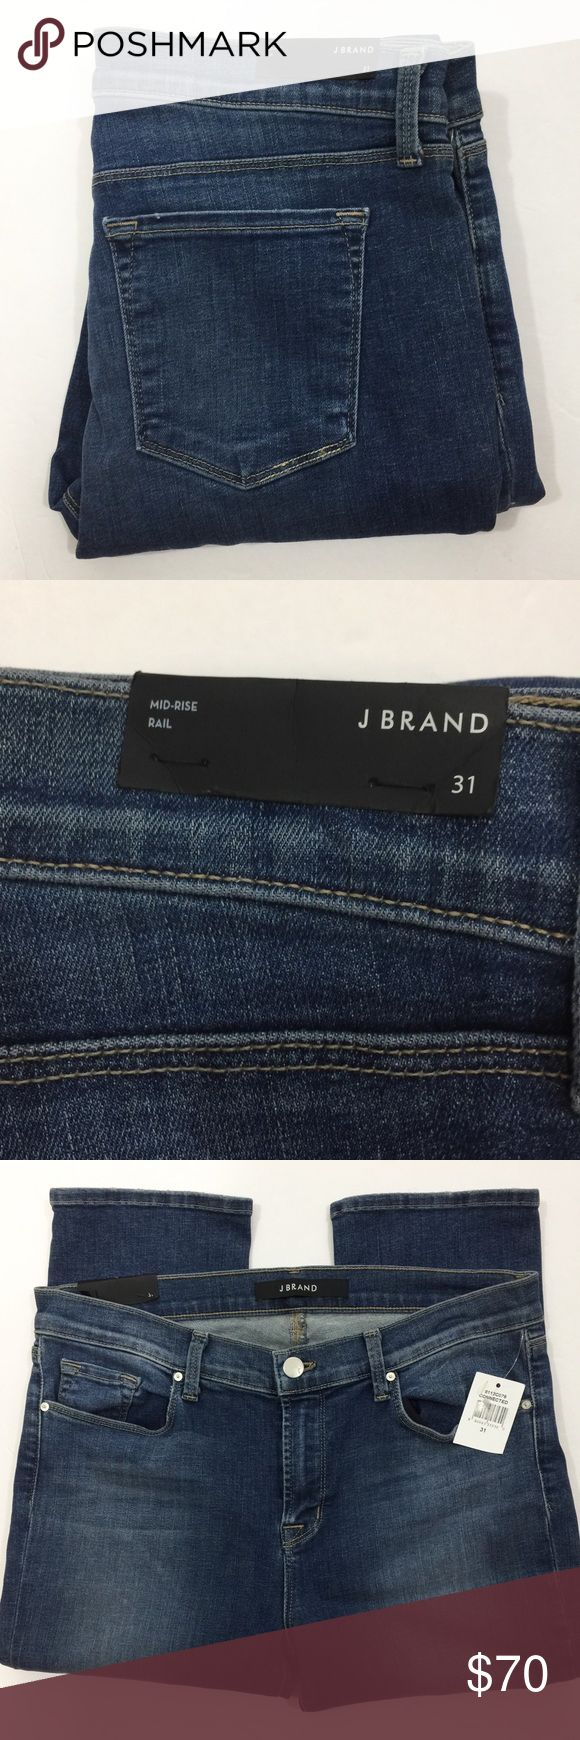 "J BRAND MID RISE 8112 RAIL SKINNY JEANS 32"" inseam. 9"" rise. 14"" back rise. Five pocket style. J Brand Jeans Skinny"